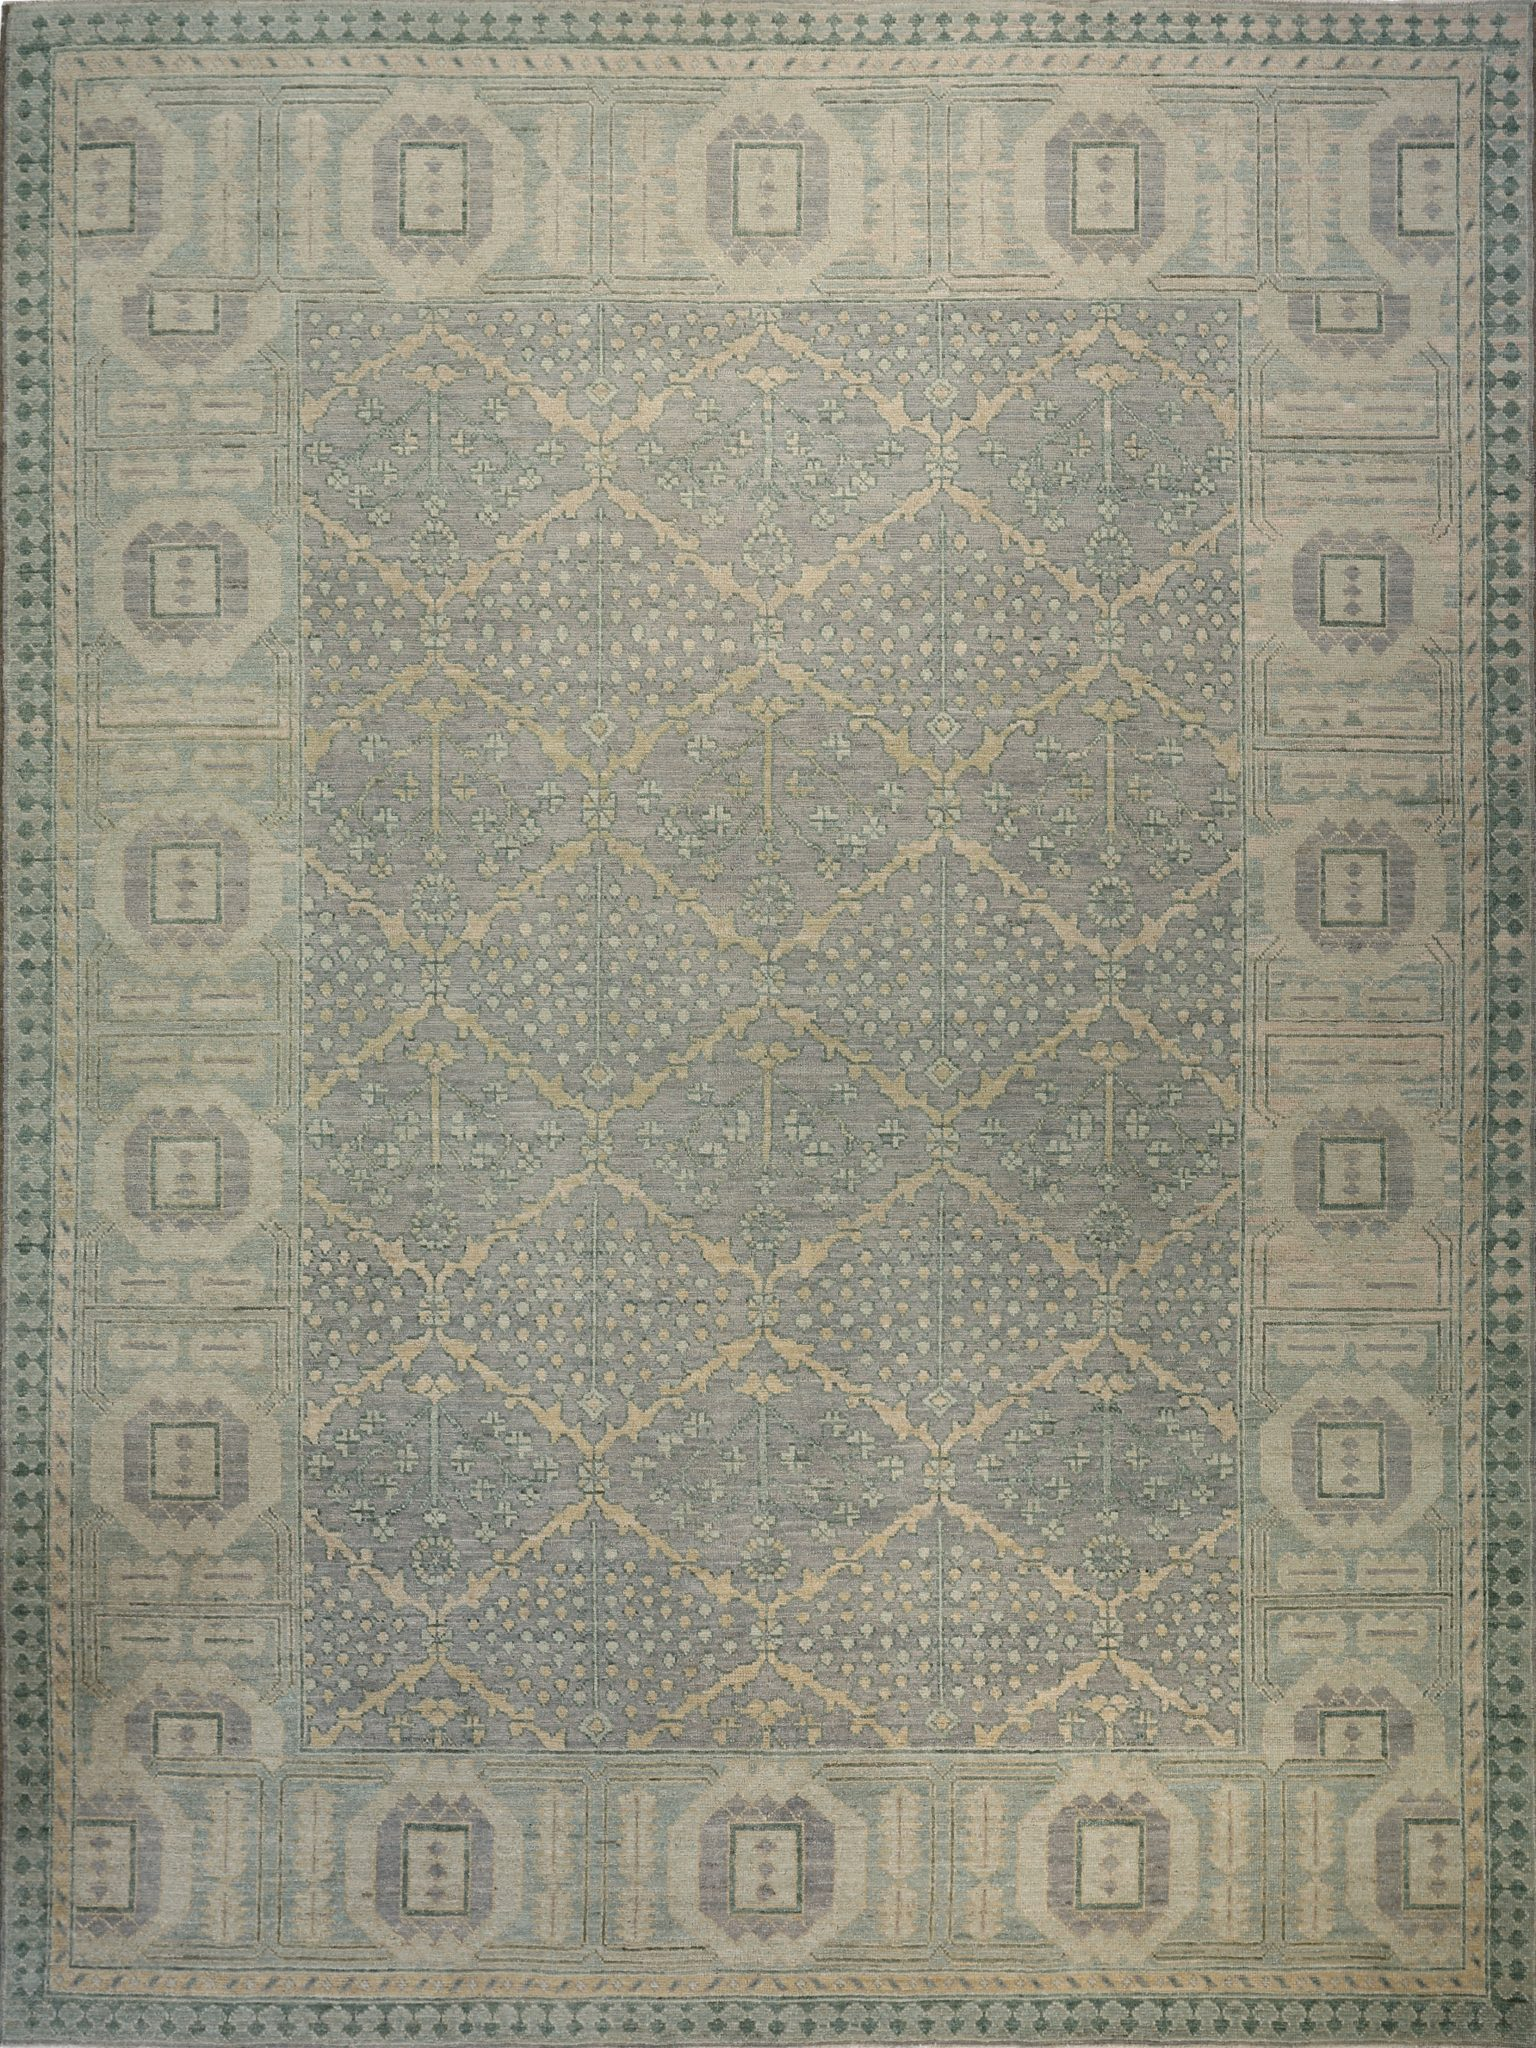 https://www.rencollection.com/product/traditional-handwoven-turkish-oushak-style-rug-9-3x12-0-108513/